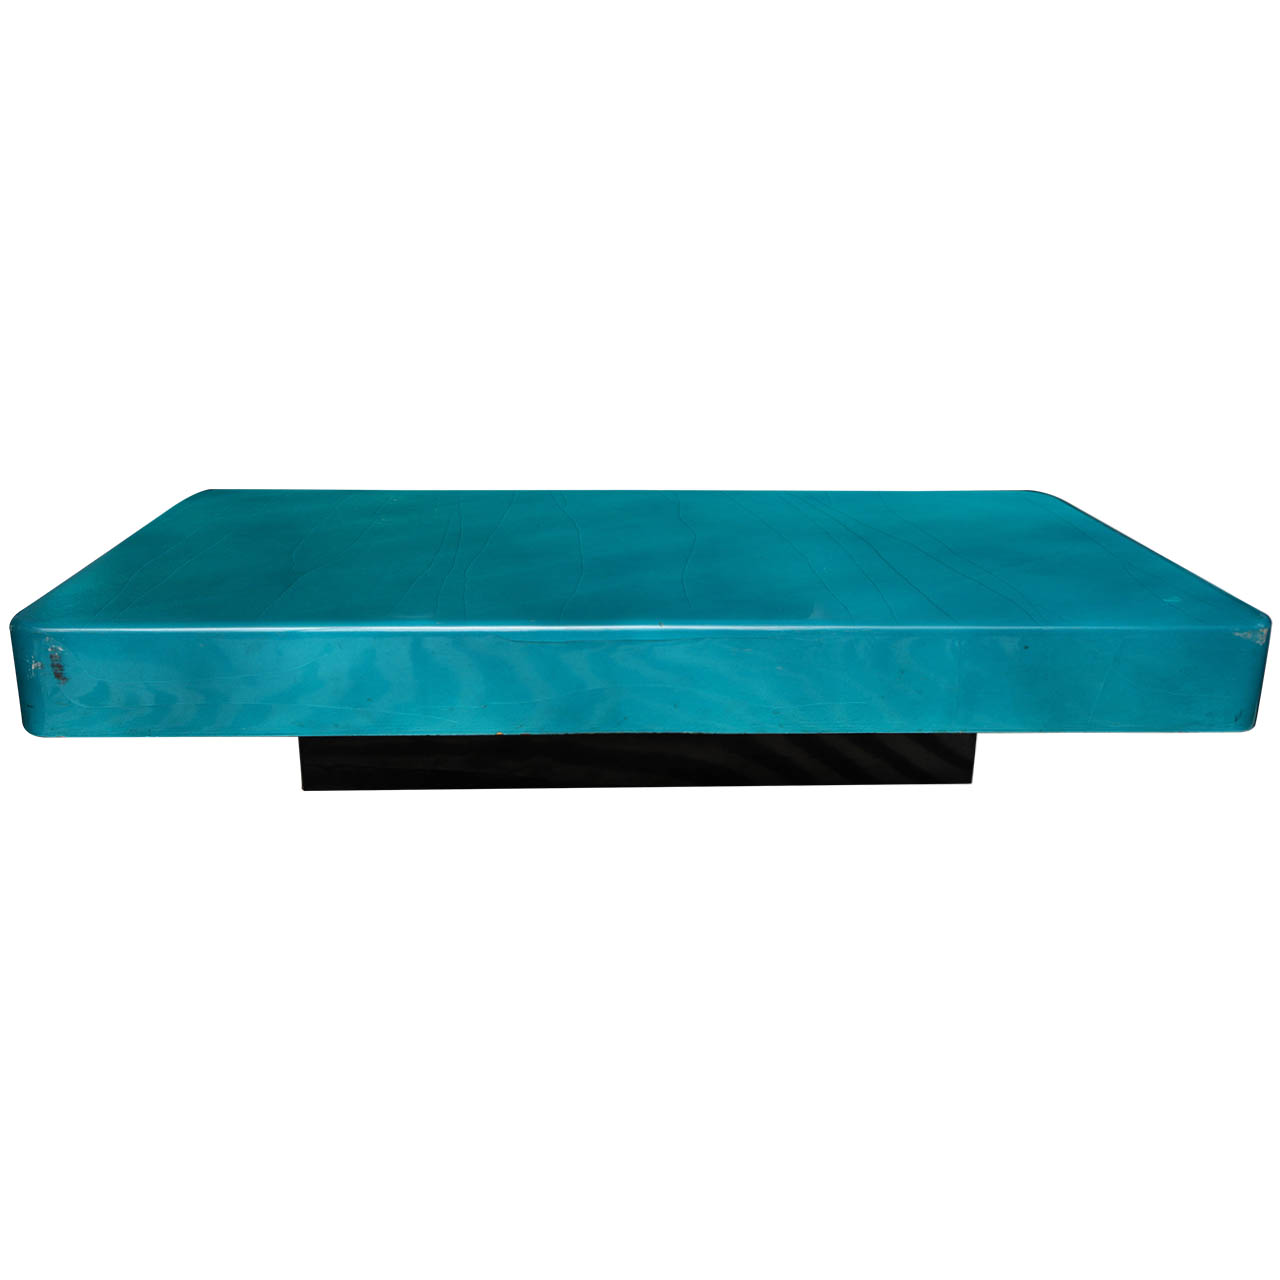 LACQUERED GOATSKIN TABLE 1